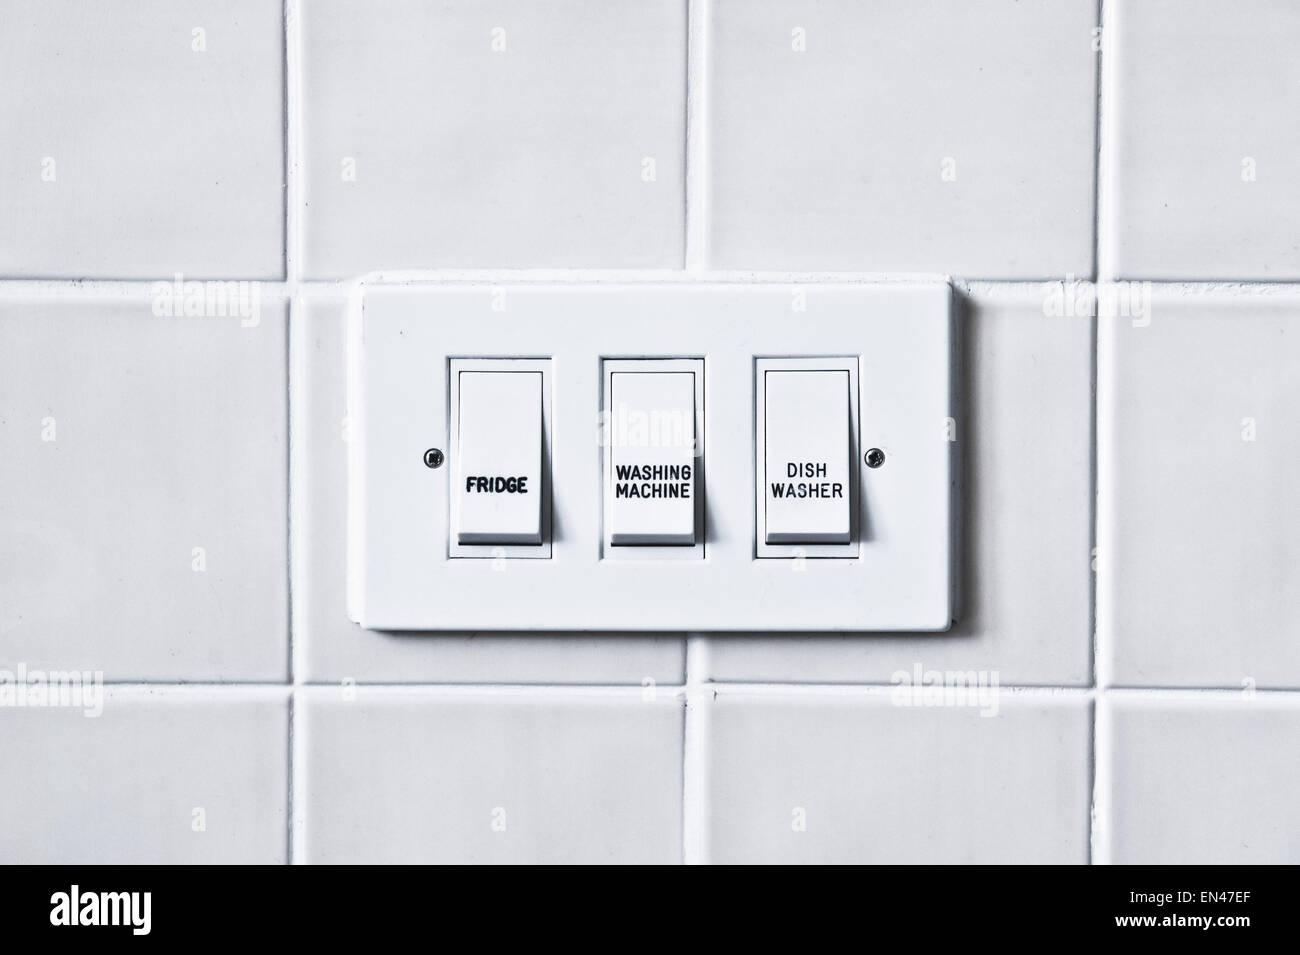 Switches for home appliances against a tiled wall Stock Photo